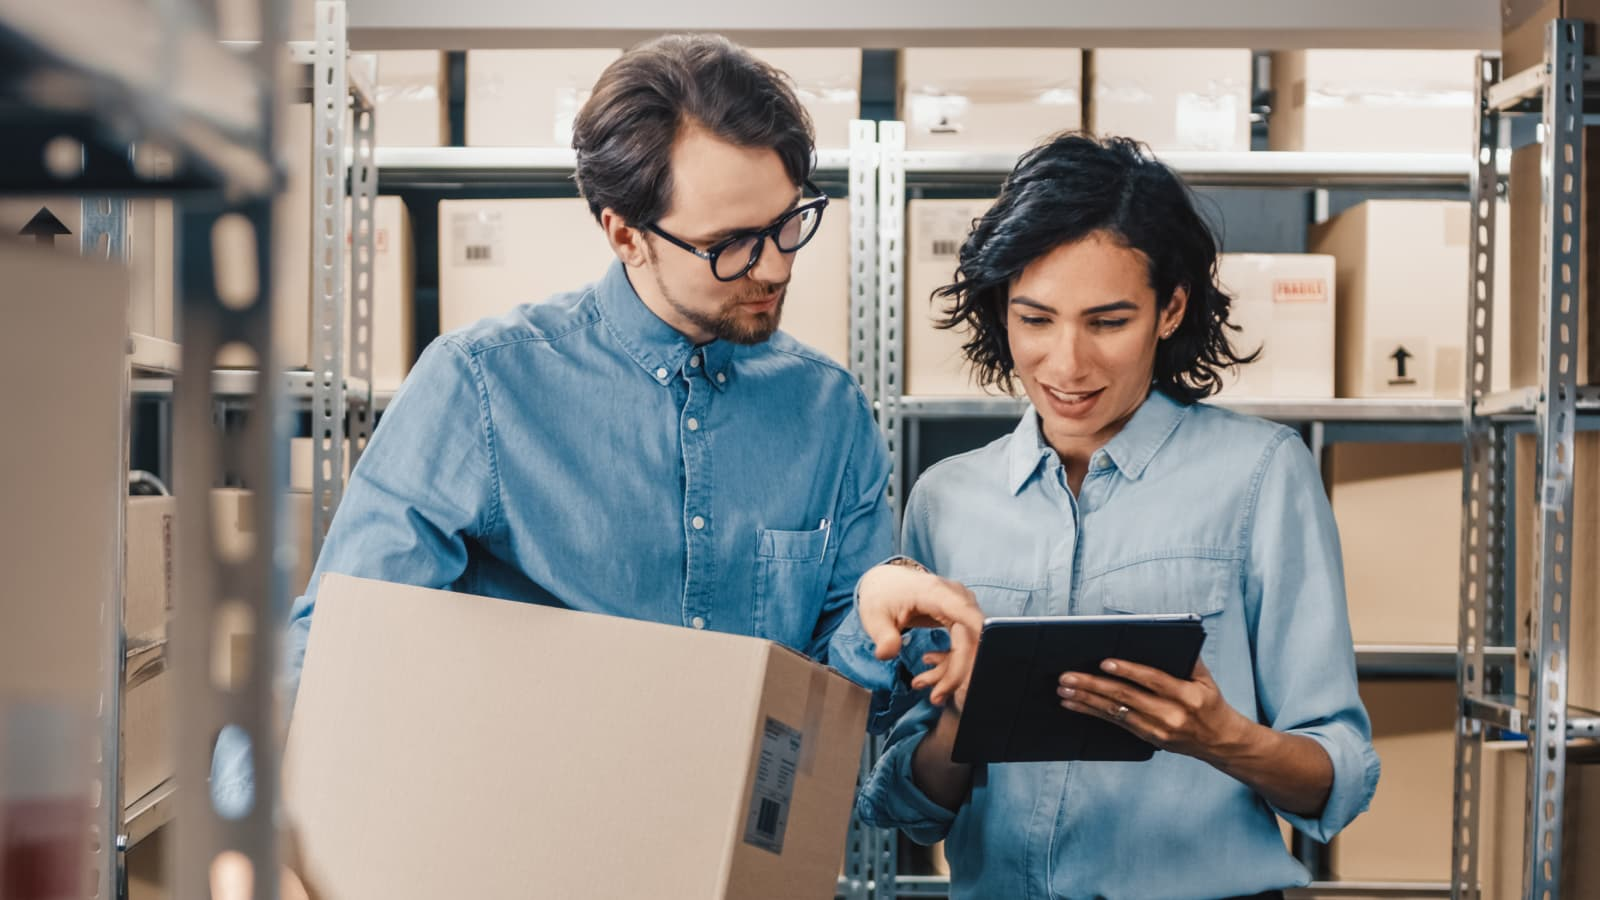 Recall InfoLink two people in warehouse looking at a tablet.